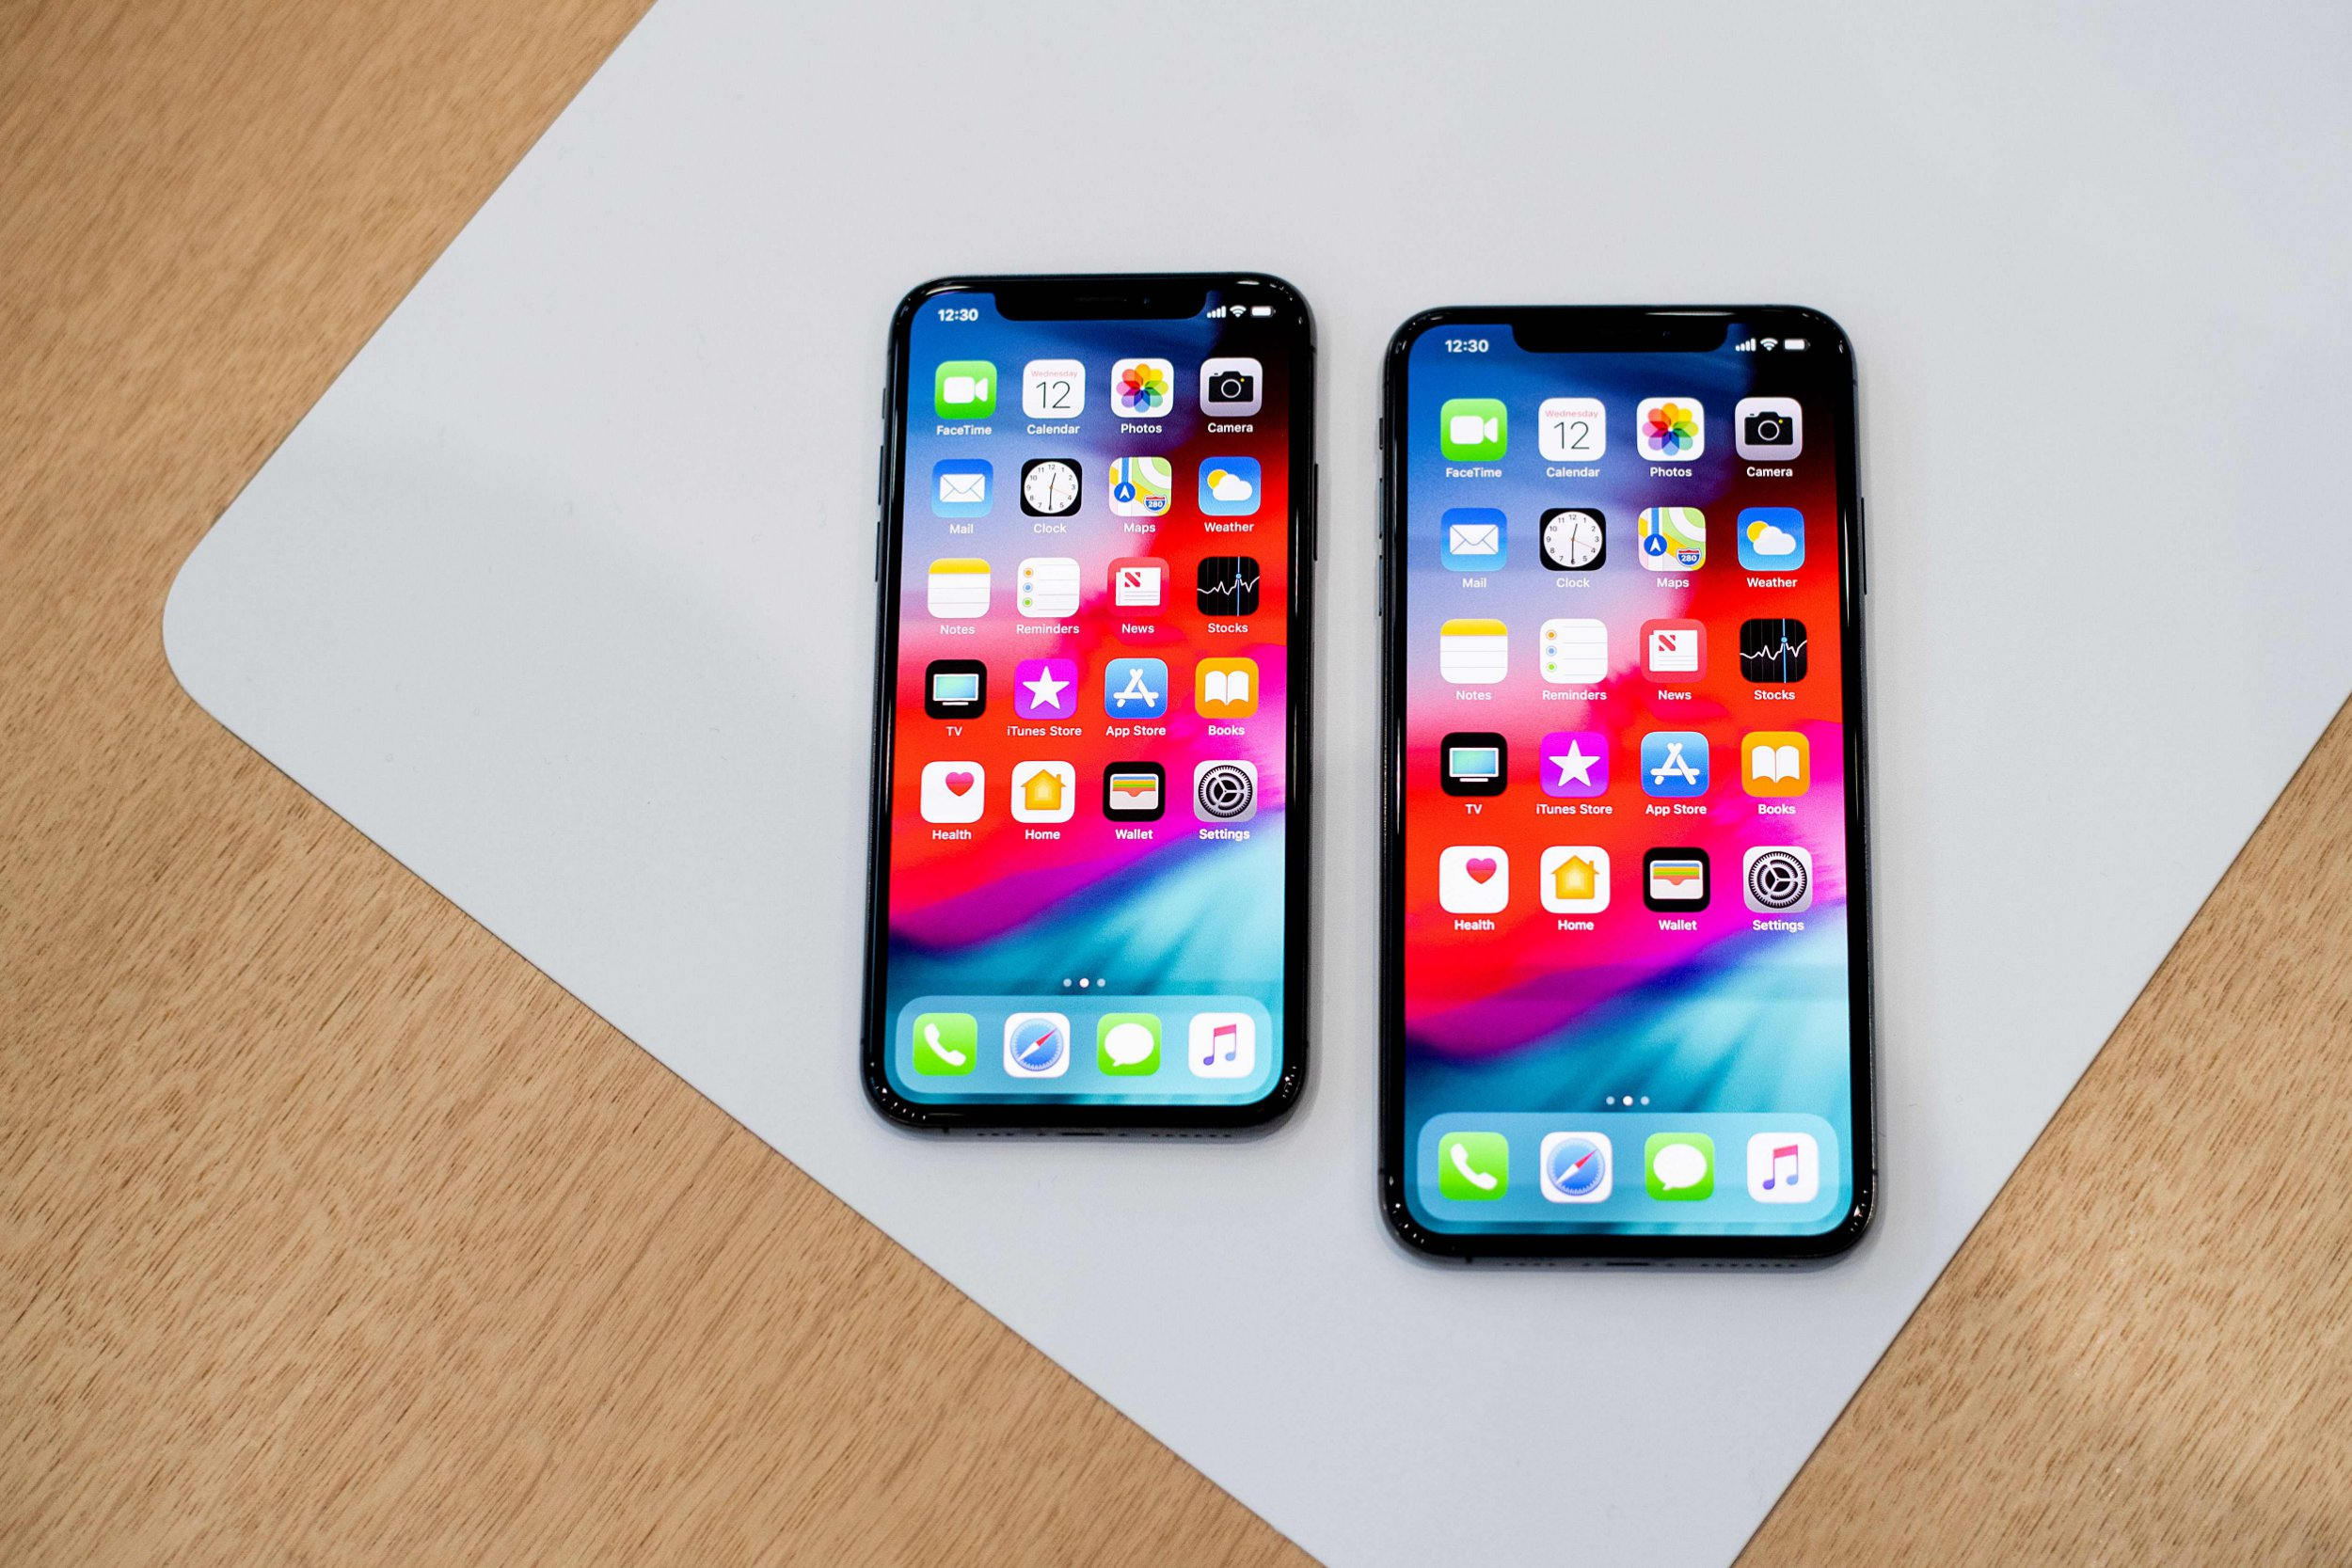 iOS 13 release date, news and the features that may arrive on your iPhone and iPad